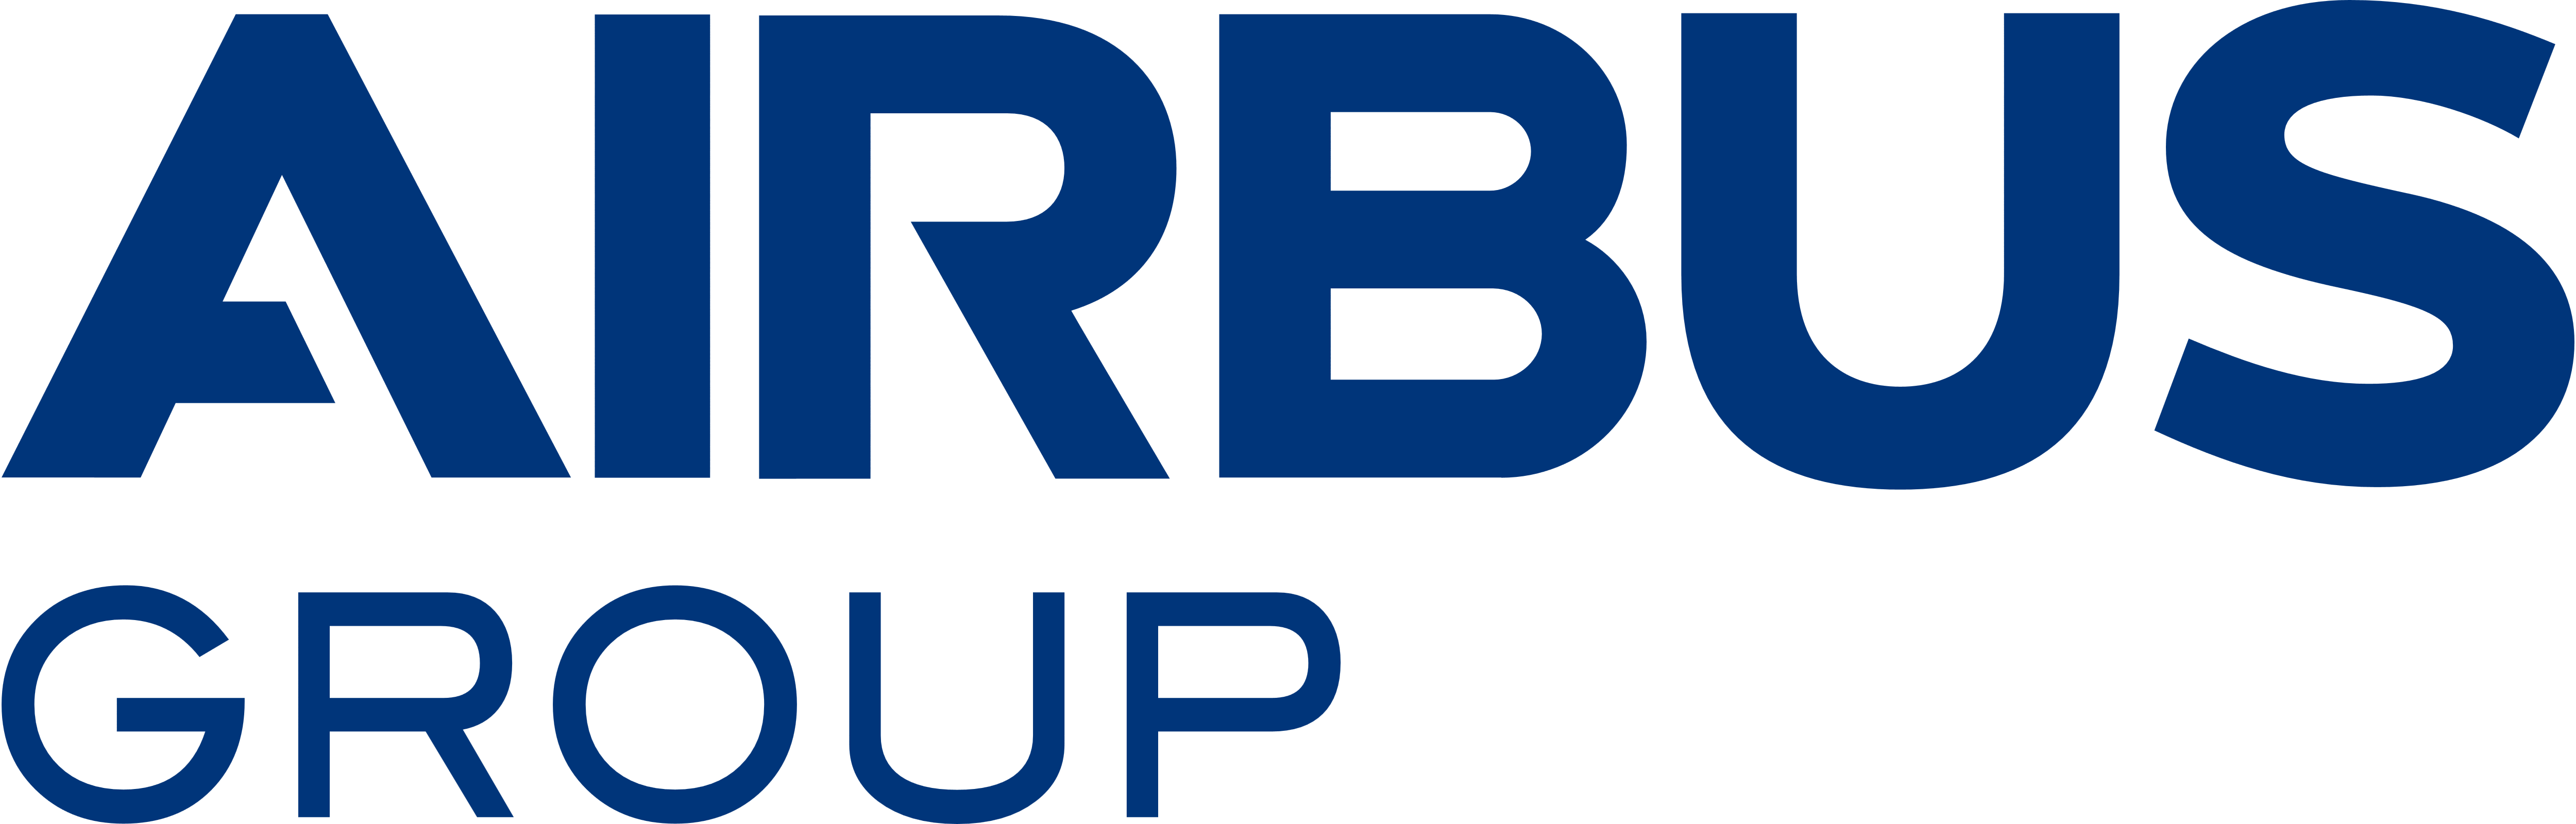 Airbus Group – Logos Download